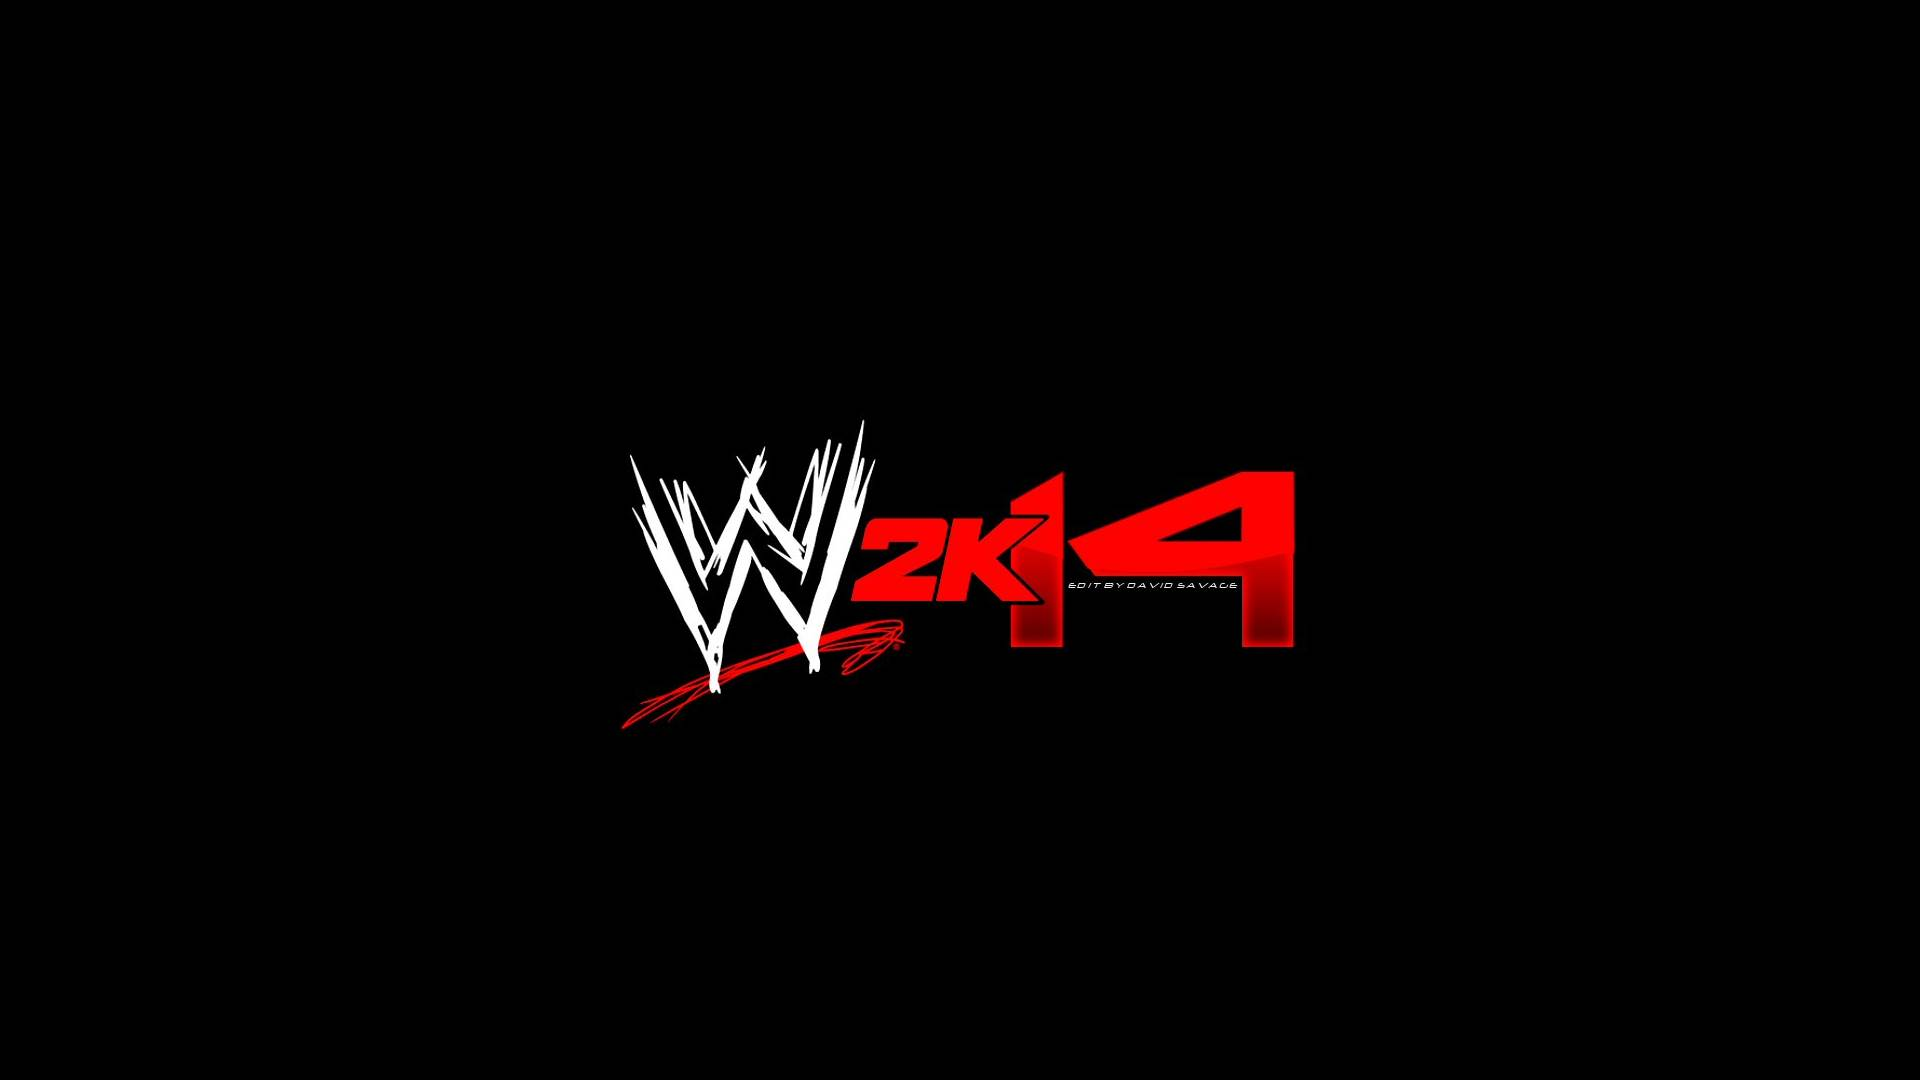 wwe 2k14 wallpapers « video game news, reviews, walkthroughs and